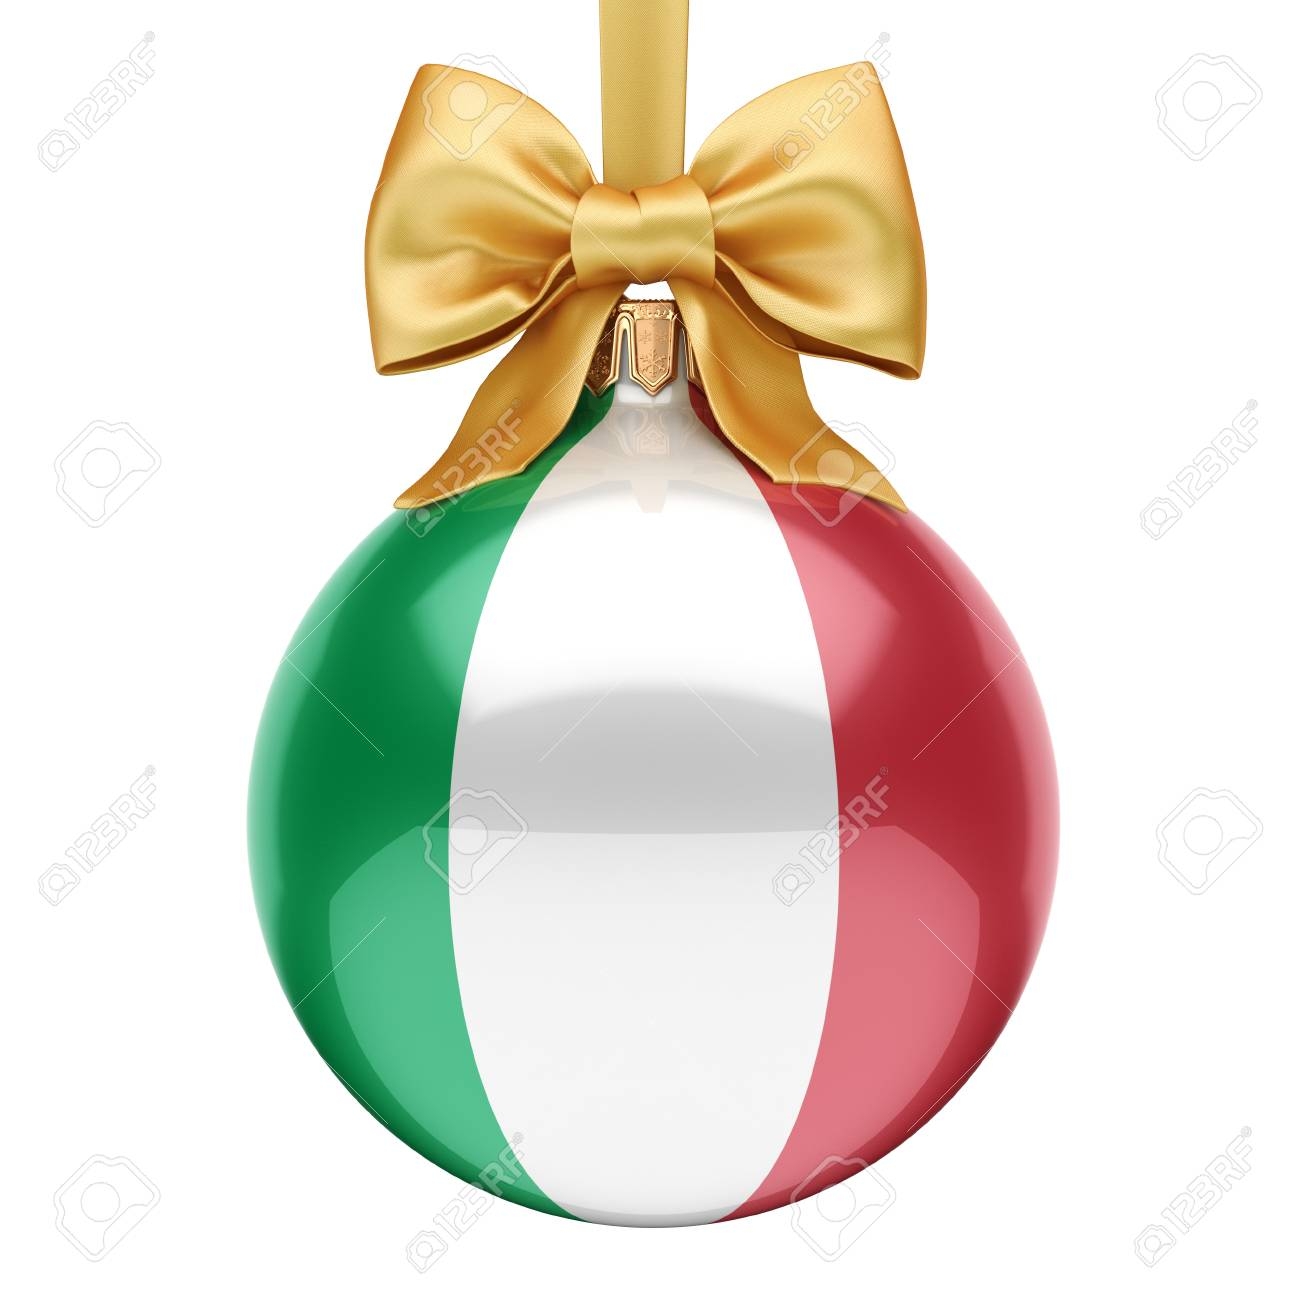 3D Rendering Christmas Ball Decorated With The Flag Of Italy Stock ...